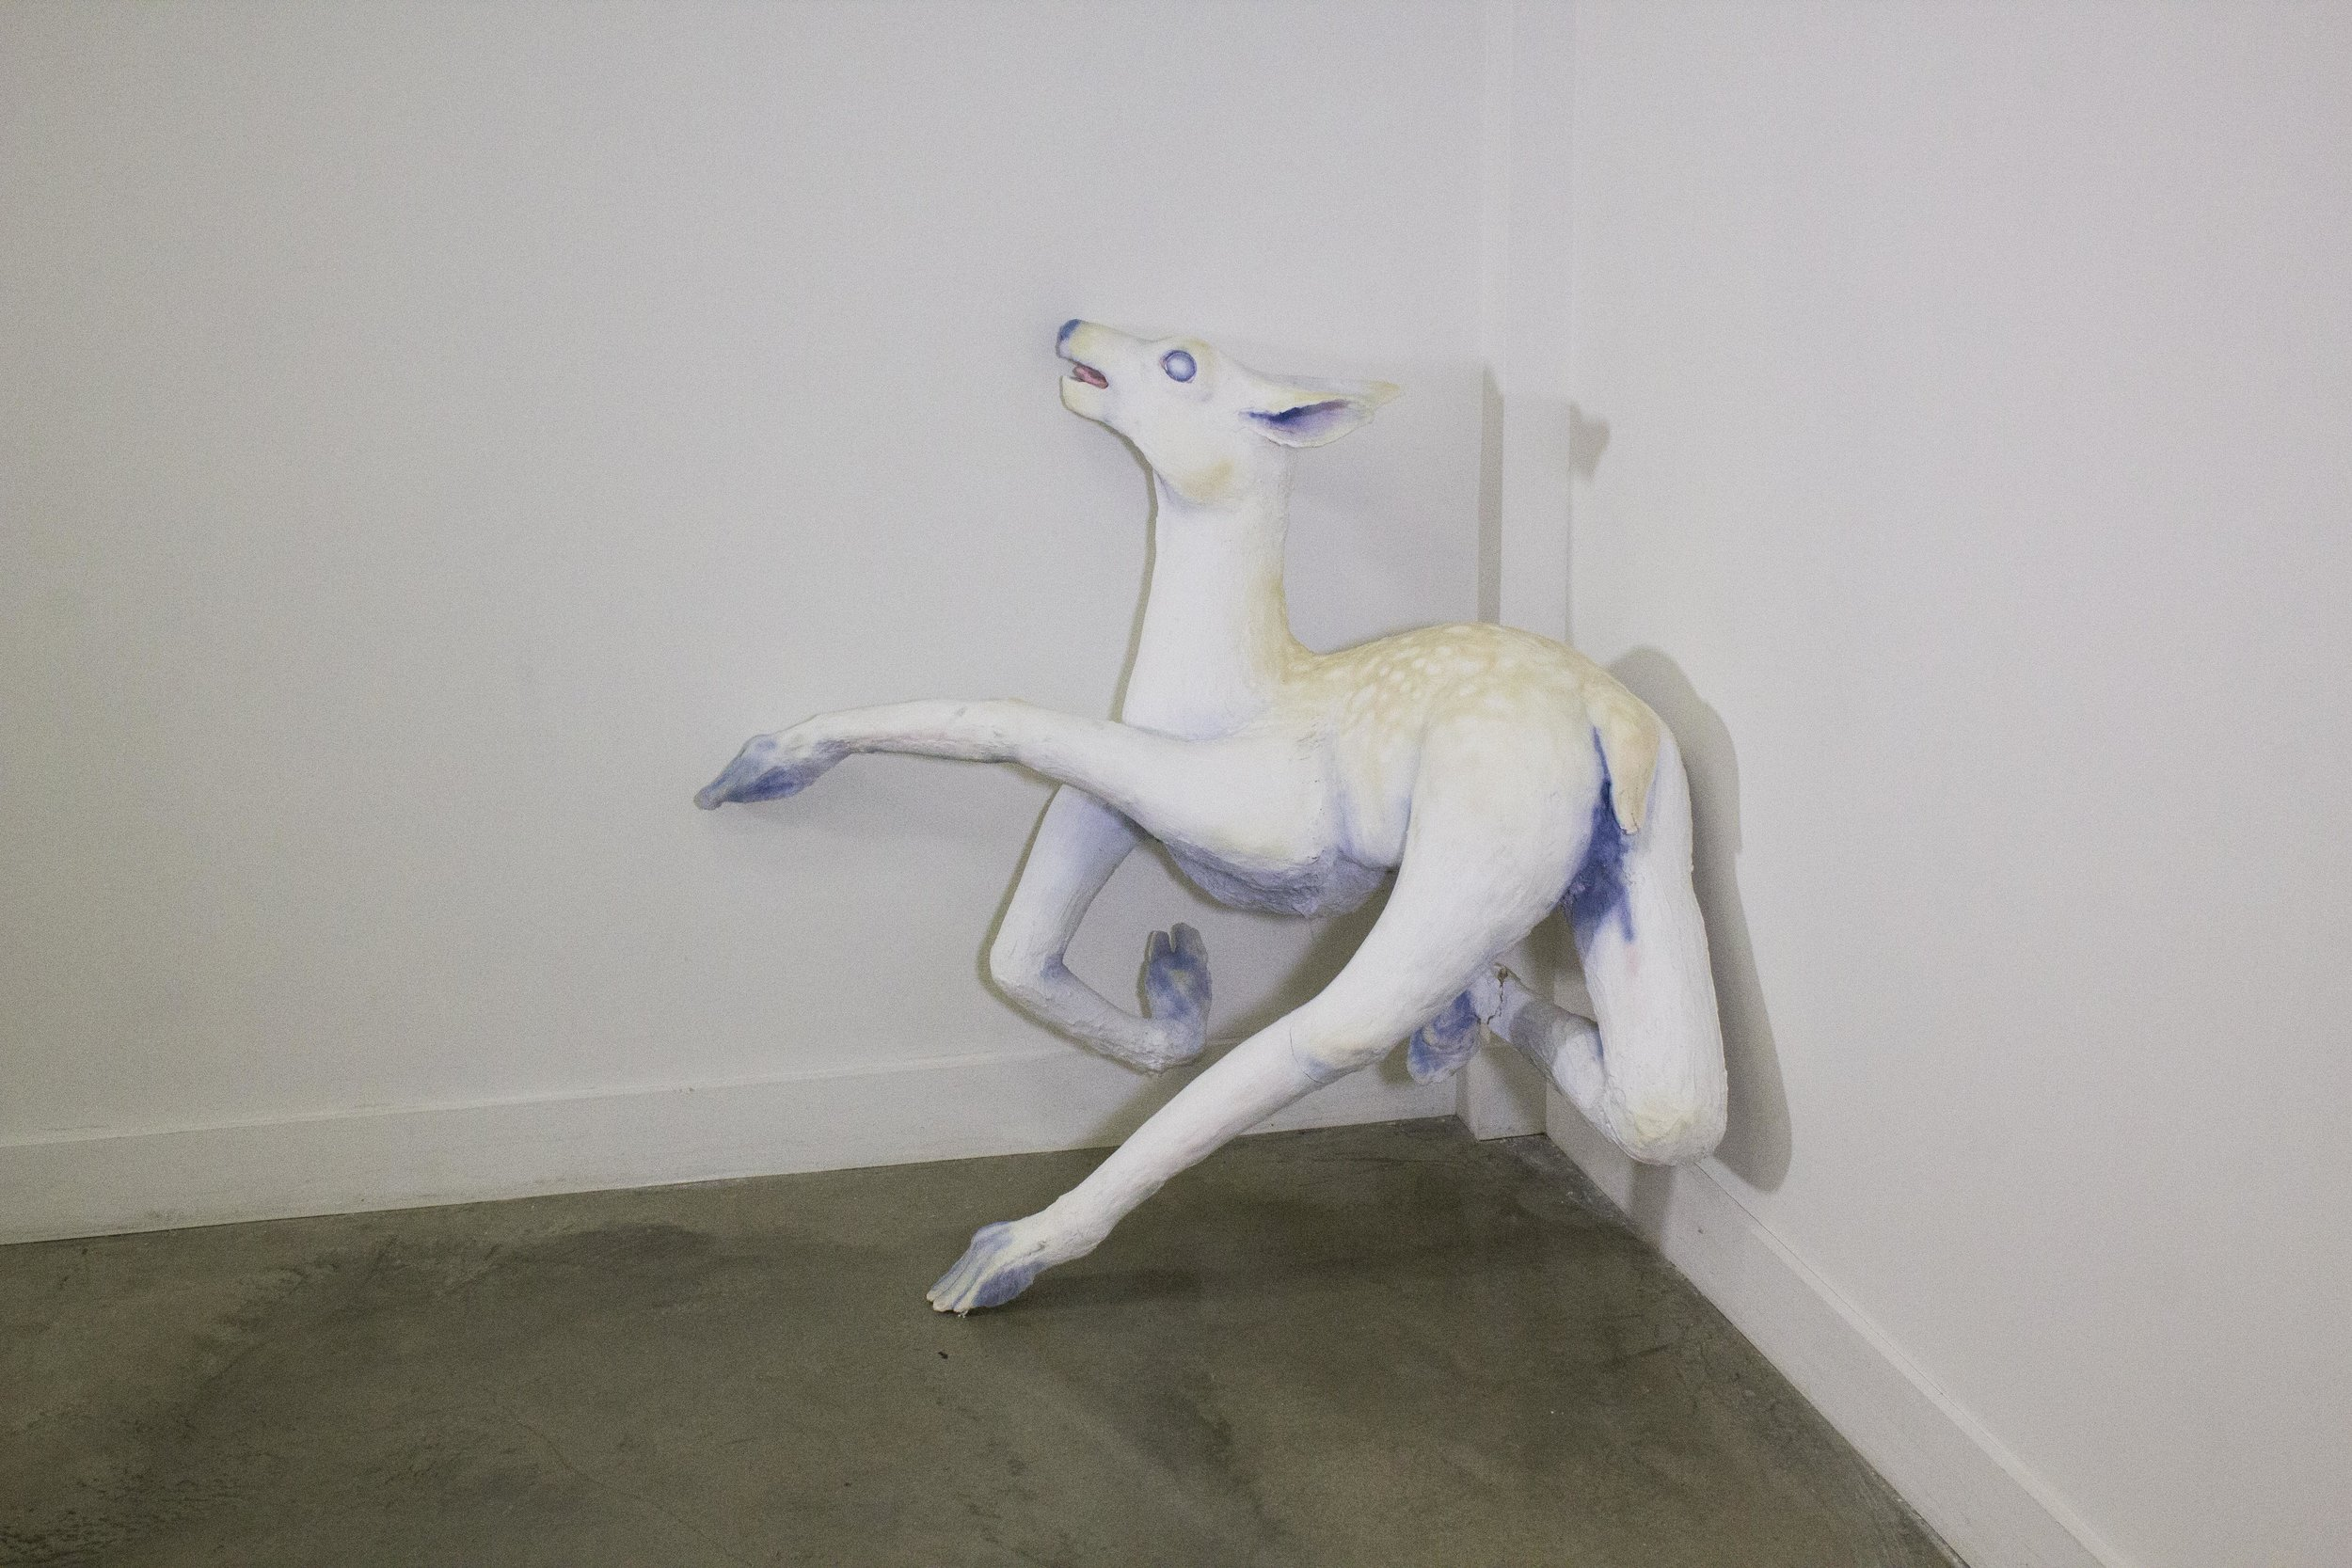 Meagan-Hindel-Sculpture-Deer3.jpg